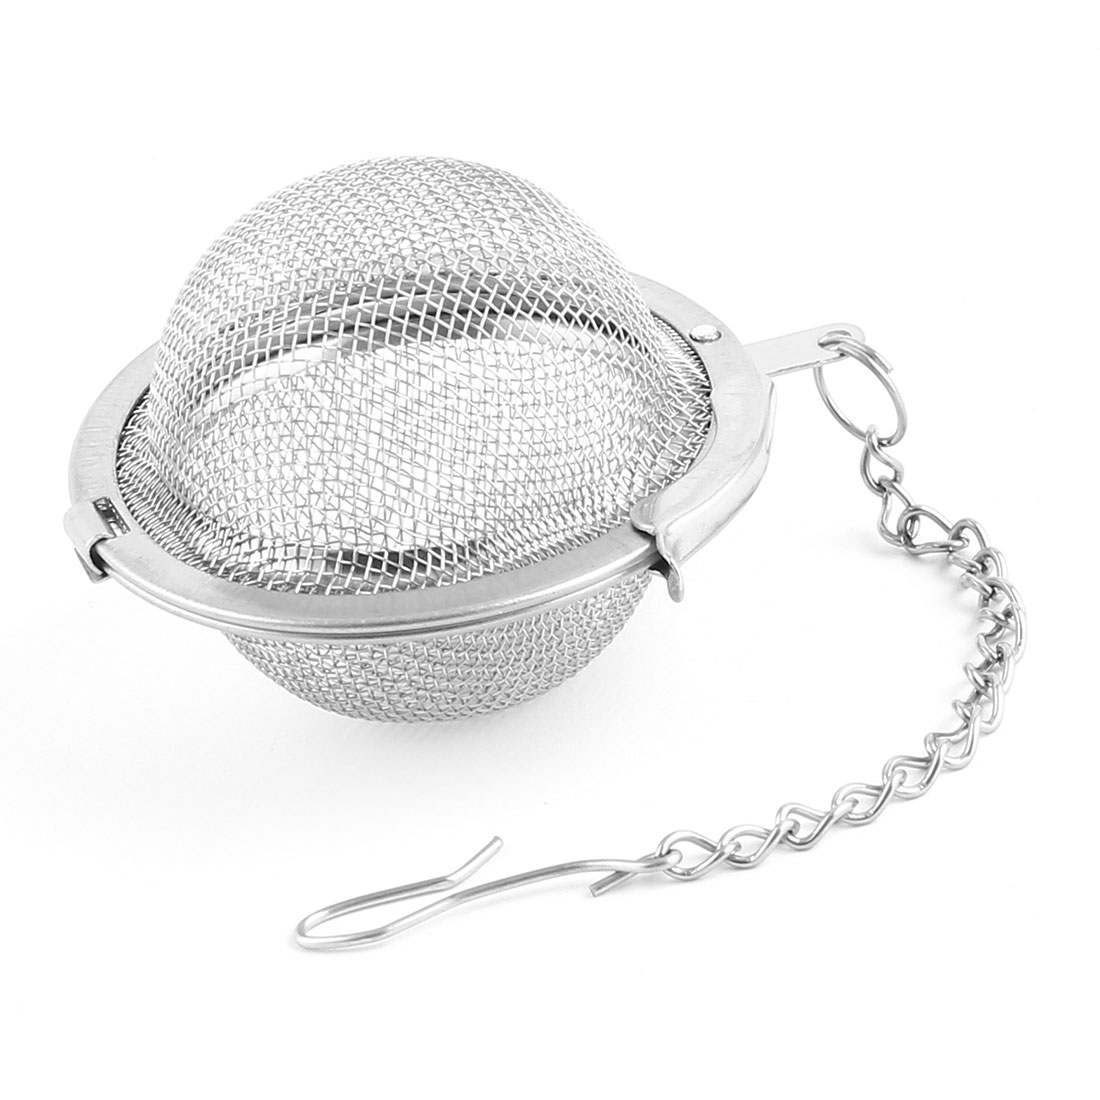 Family 4.5cm Dia Stainless Steel Locking Chain Cooking Infuser Mesh Tea Ball Strainer by